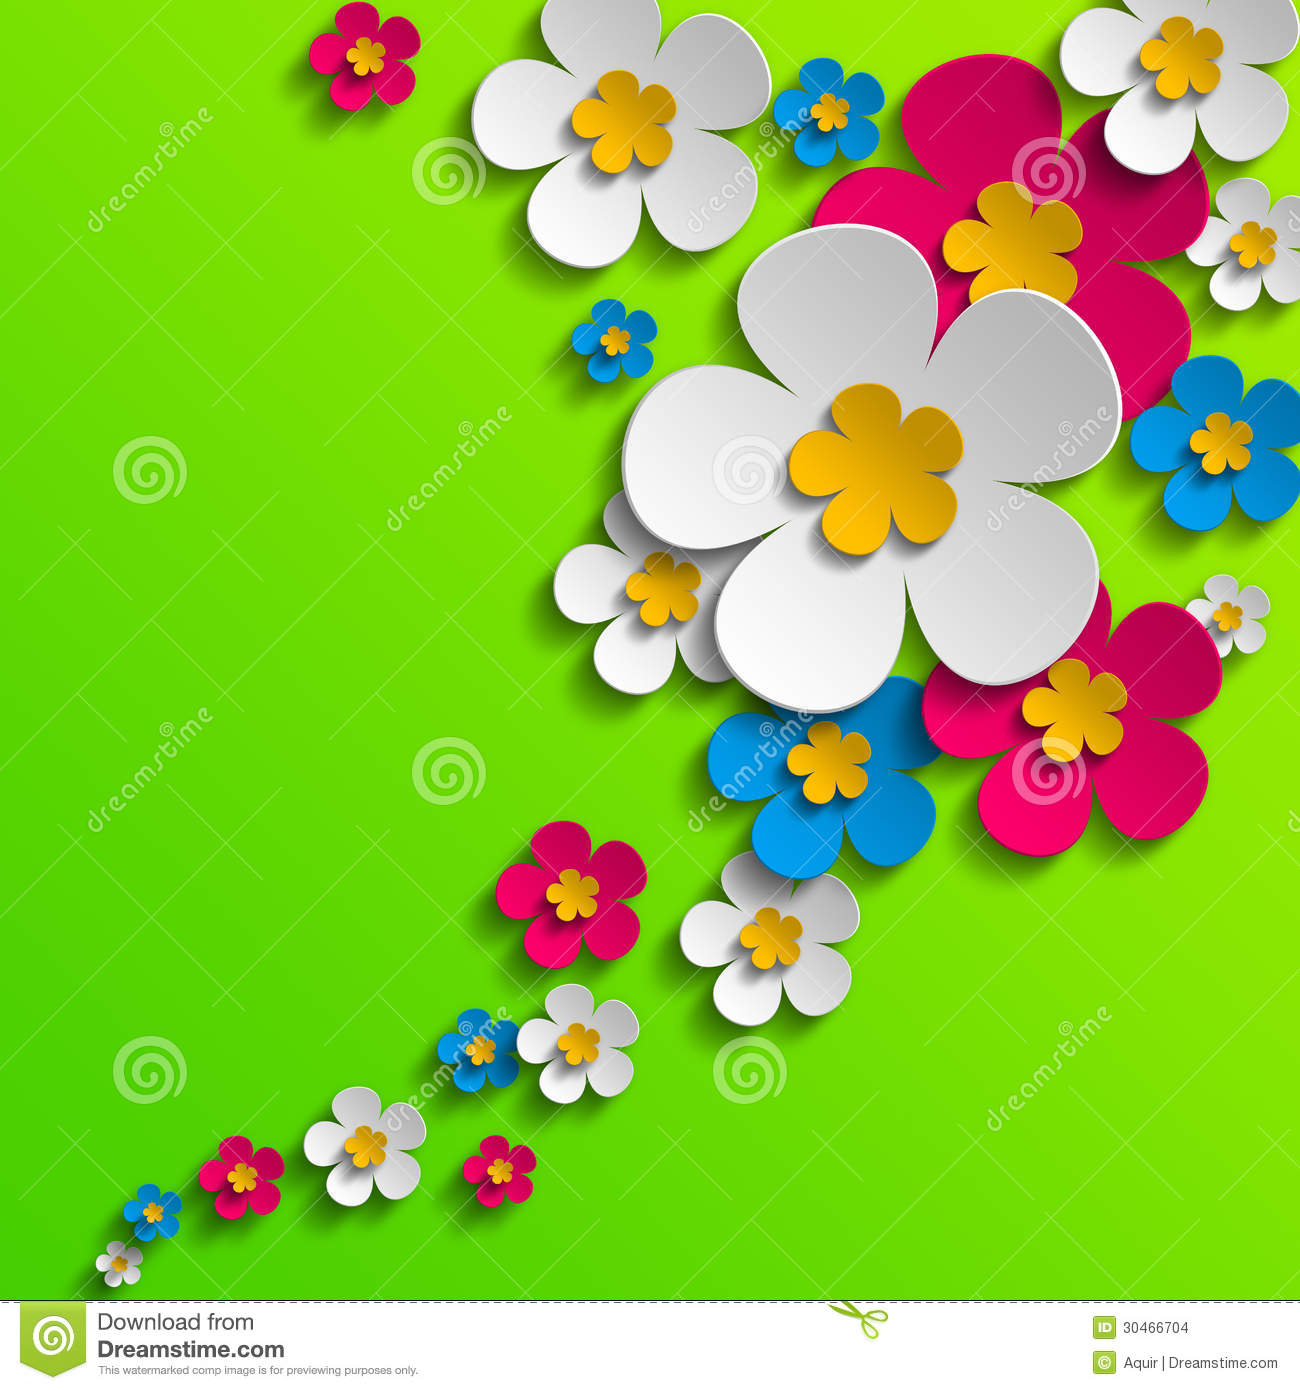 Spring poster - pink, blue and white flowers on green background.